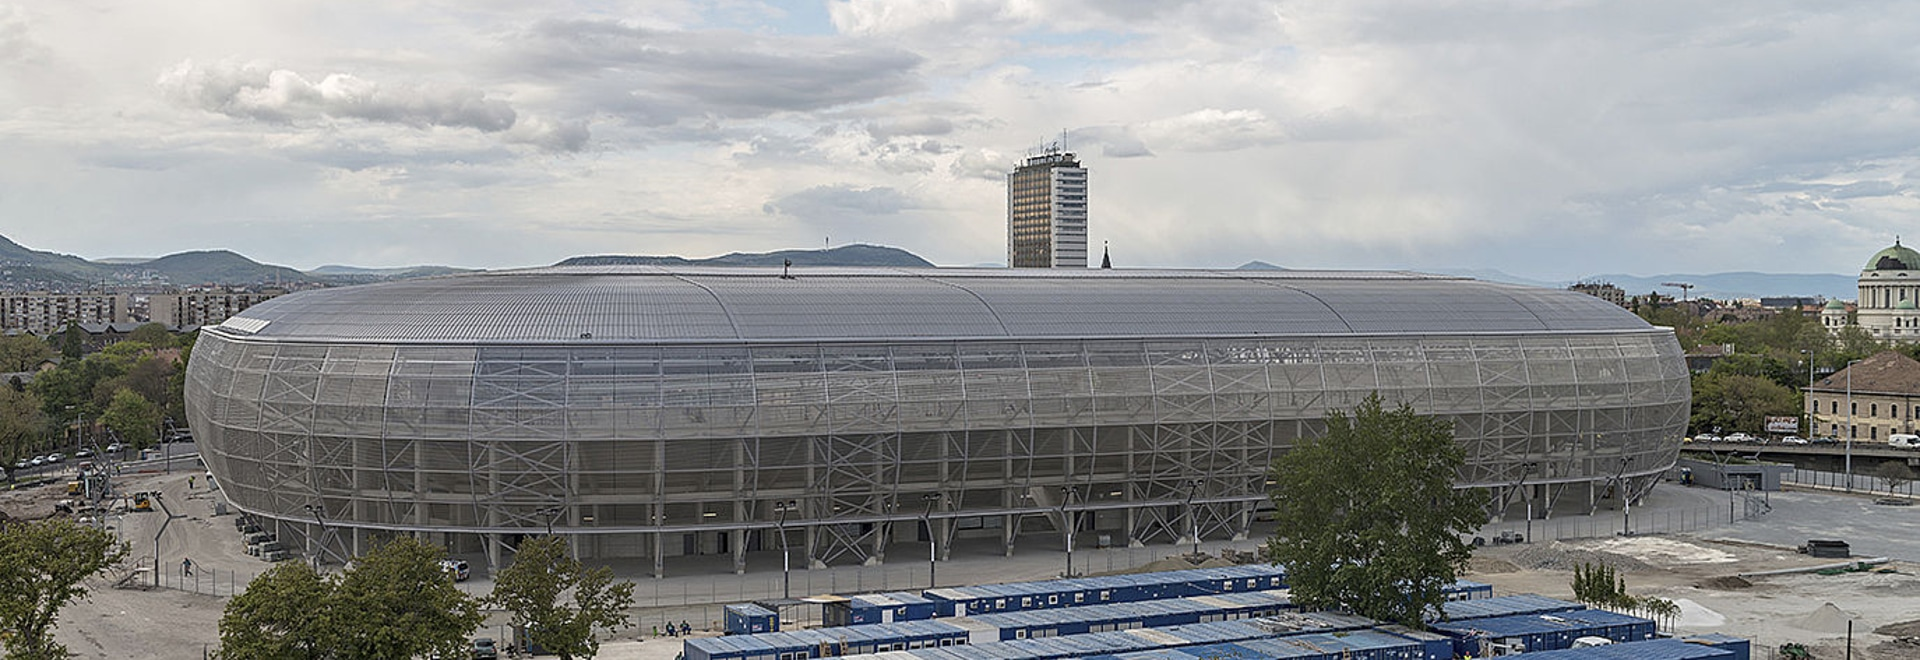 A new stadium has been built in Budapest